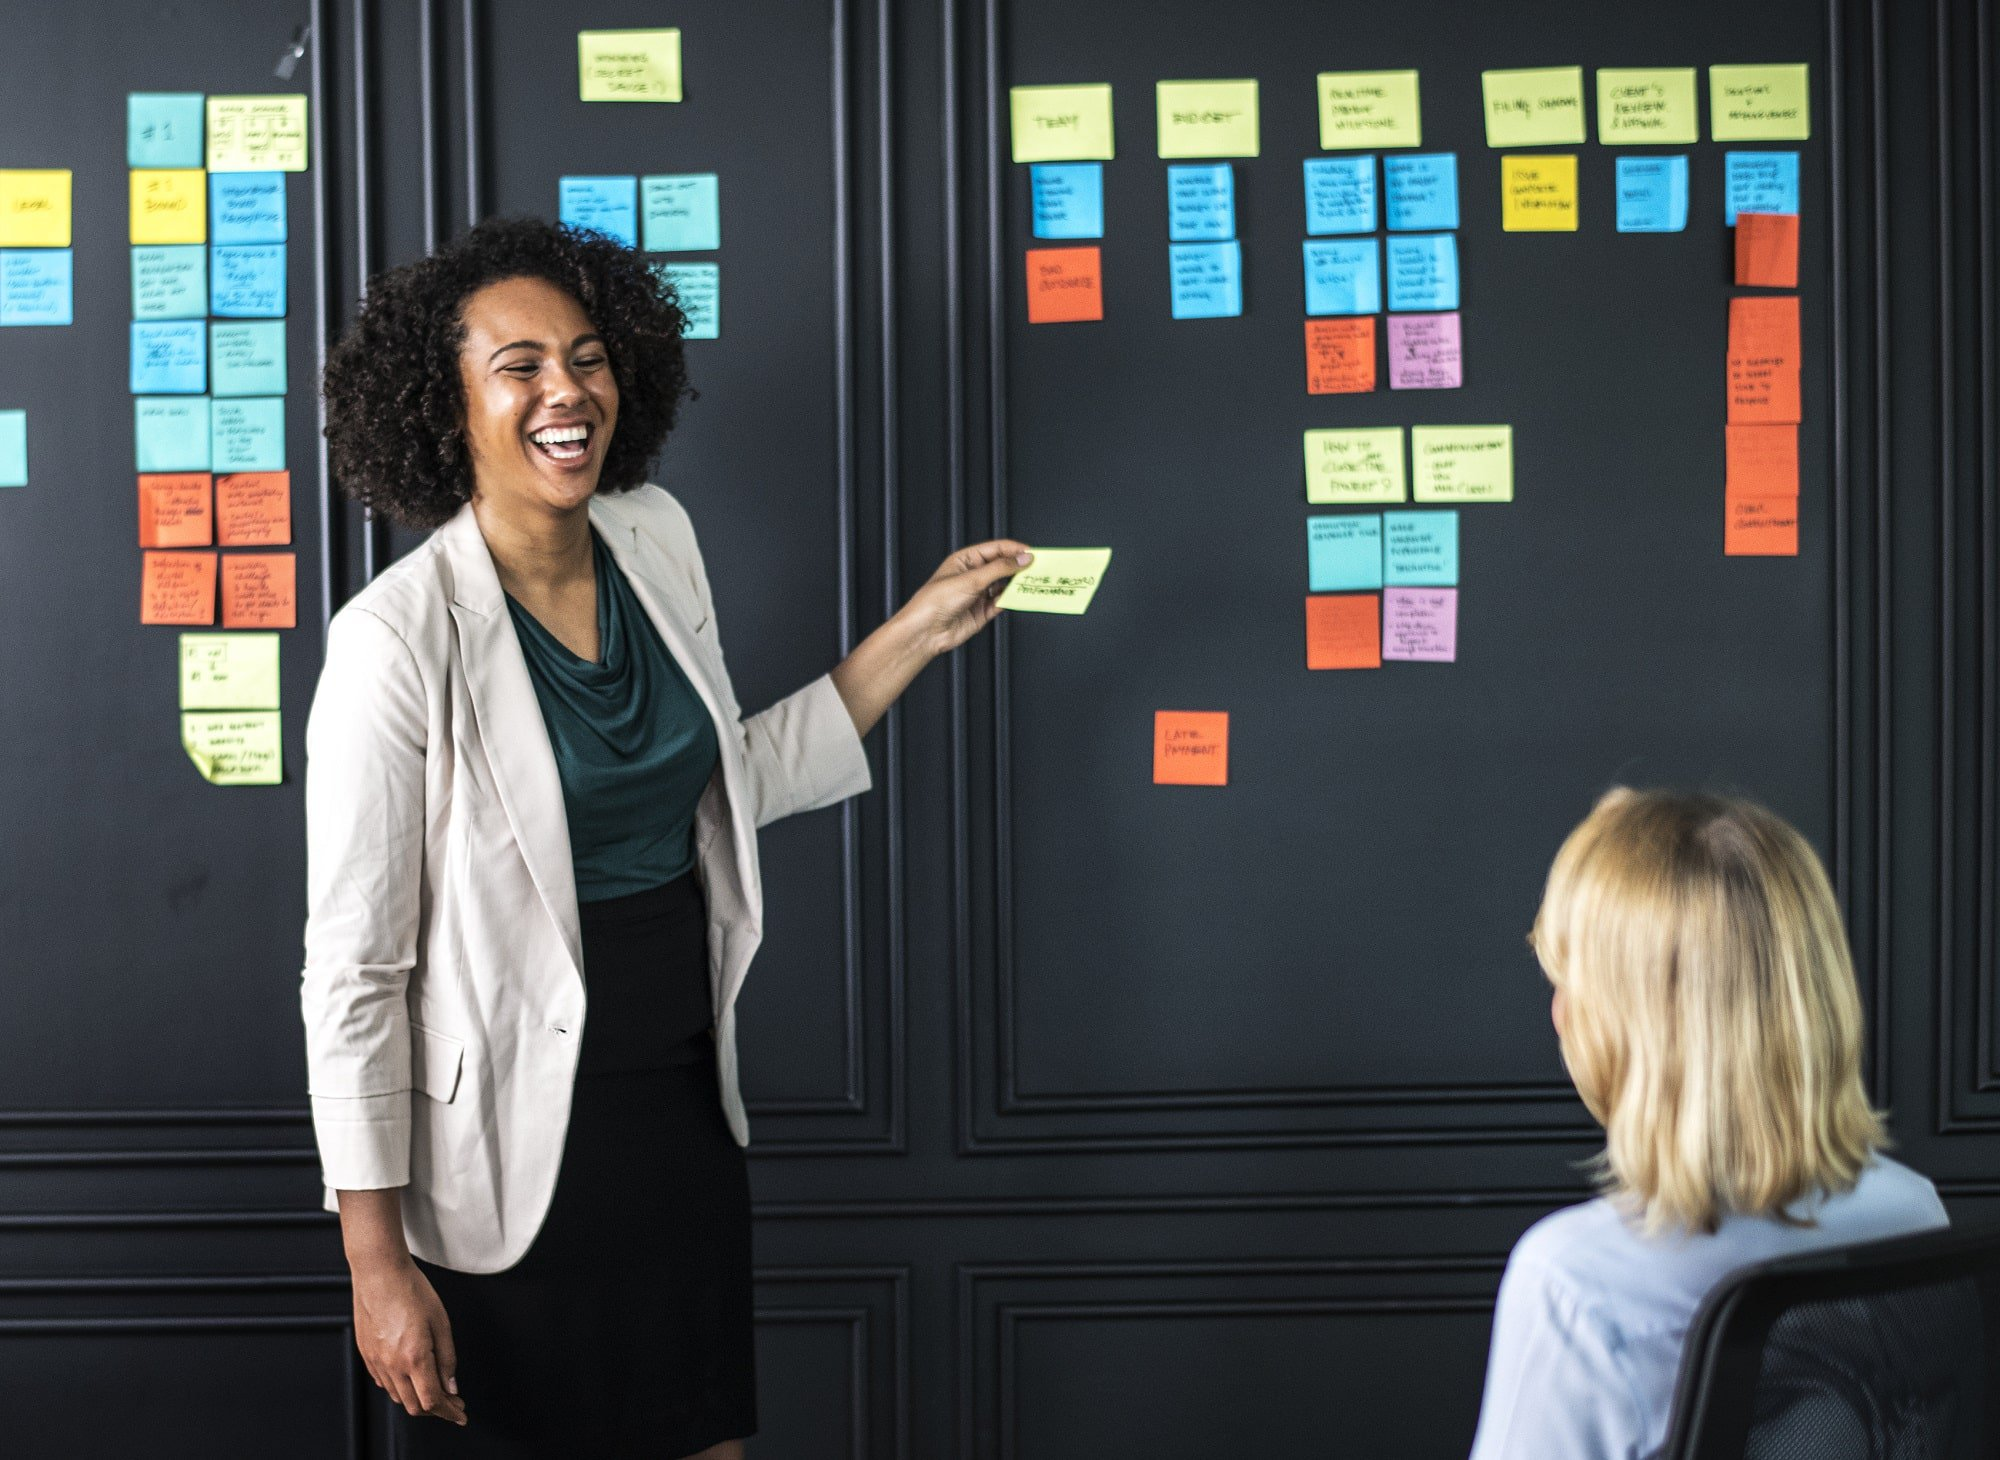 Smiling businesswoman presents to her colleagues